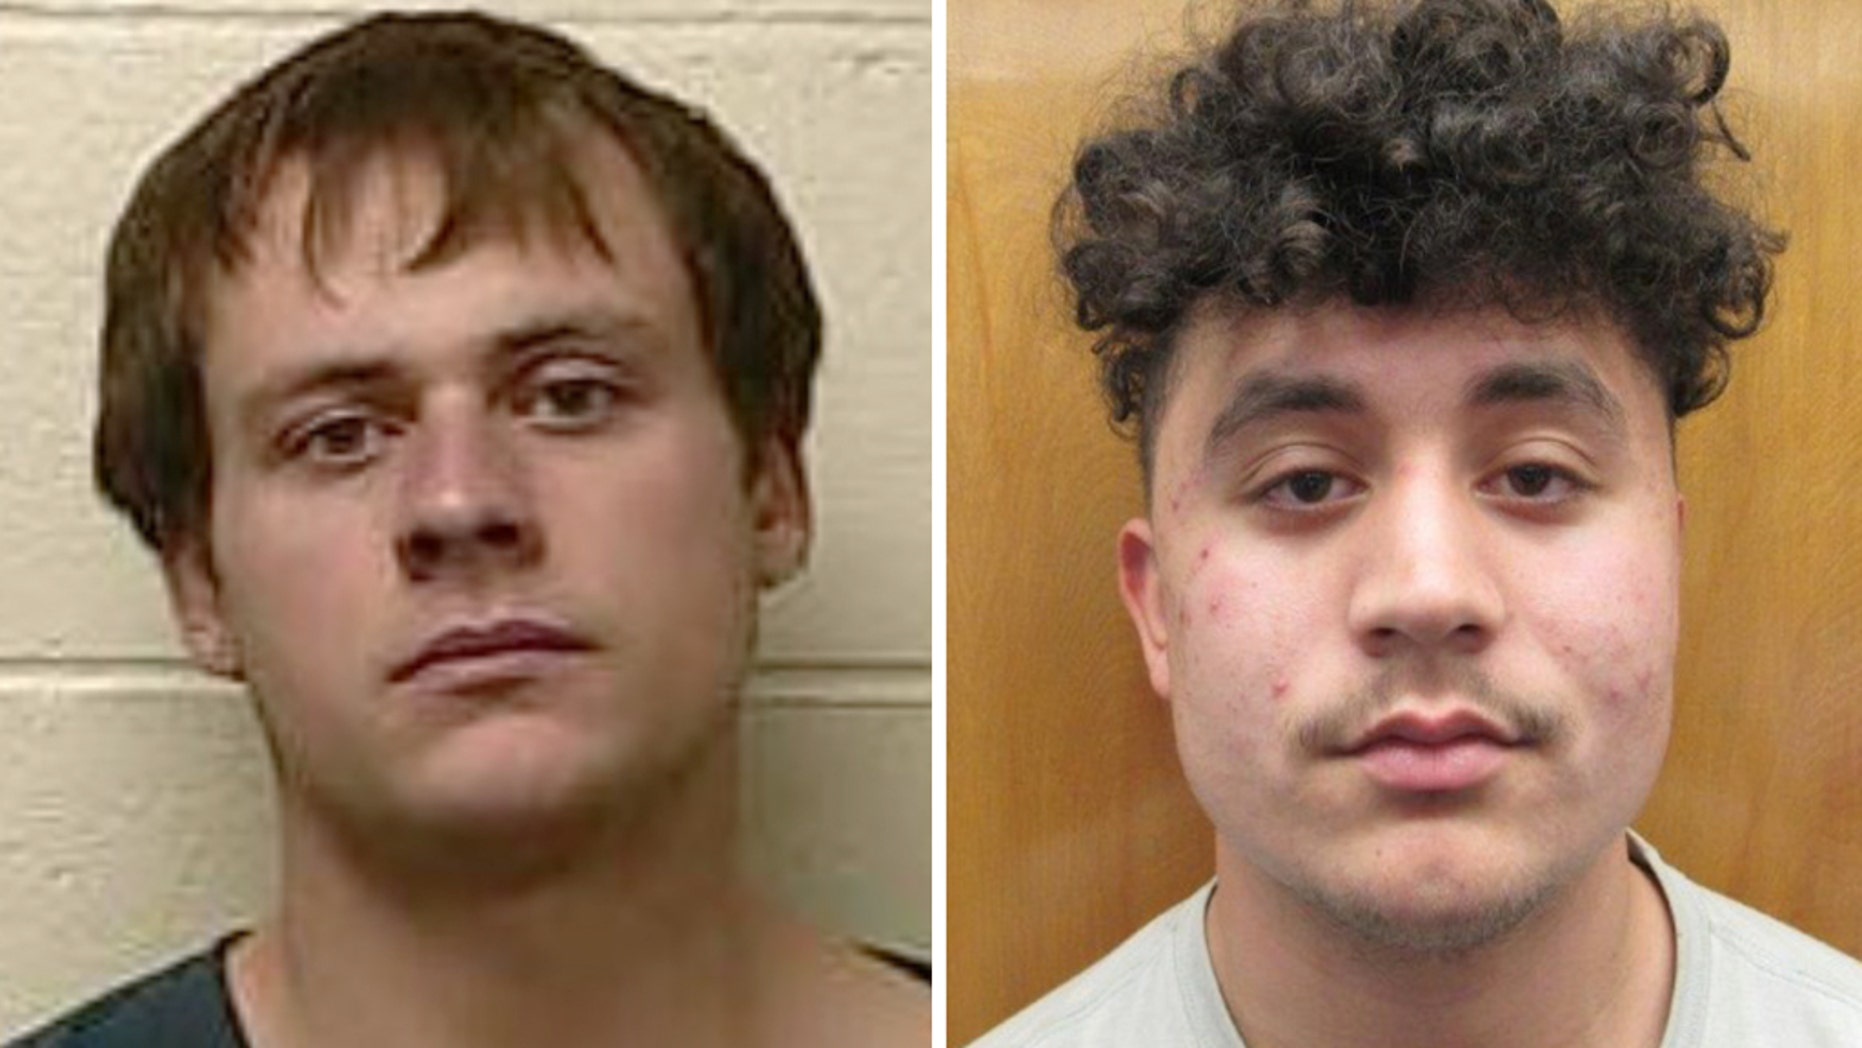 Two teenagers in Oregon were arrested following a string of alleged destructive incidents occurring since September that involved pumpkins and baseball bats, authorities announced Monday.